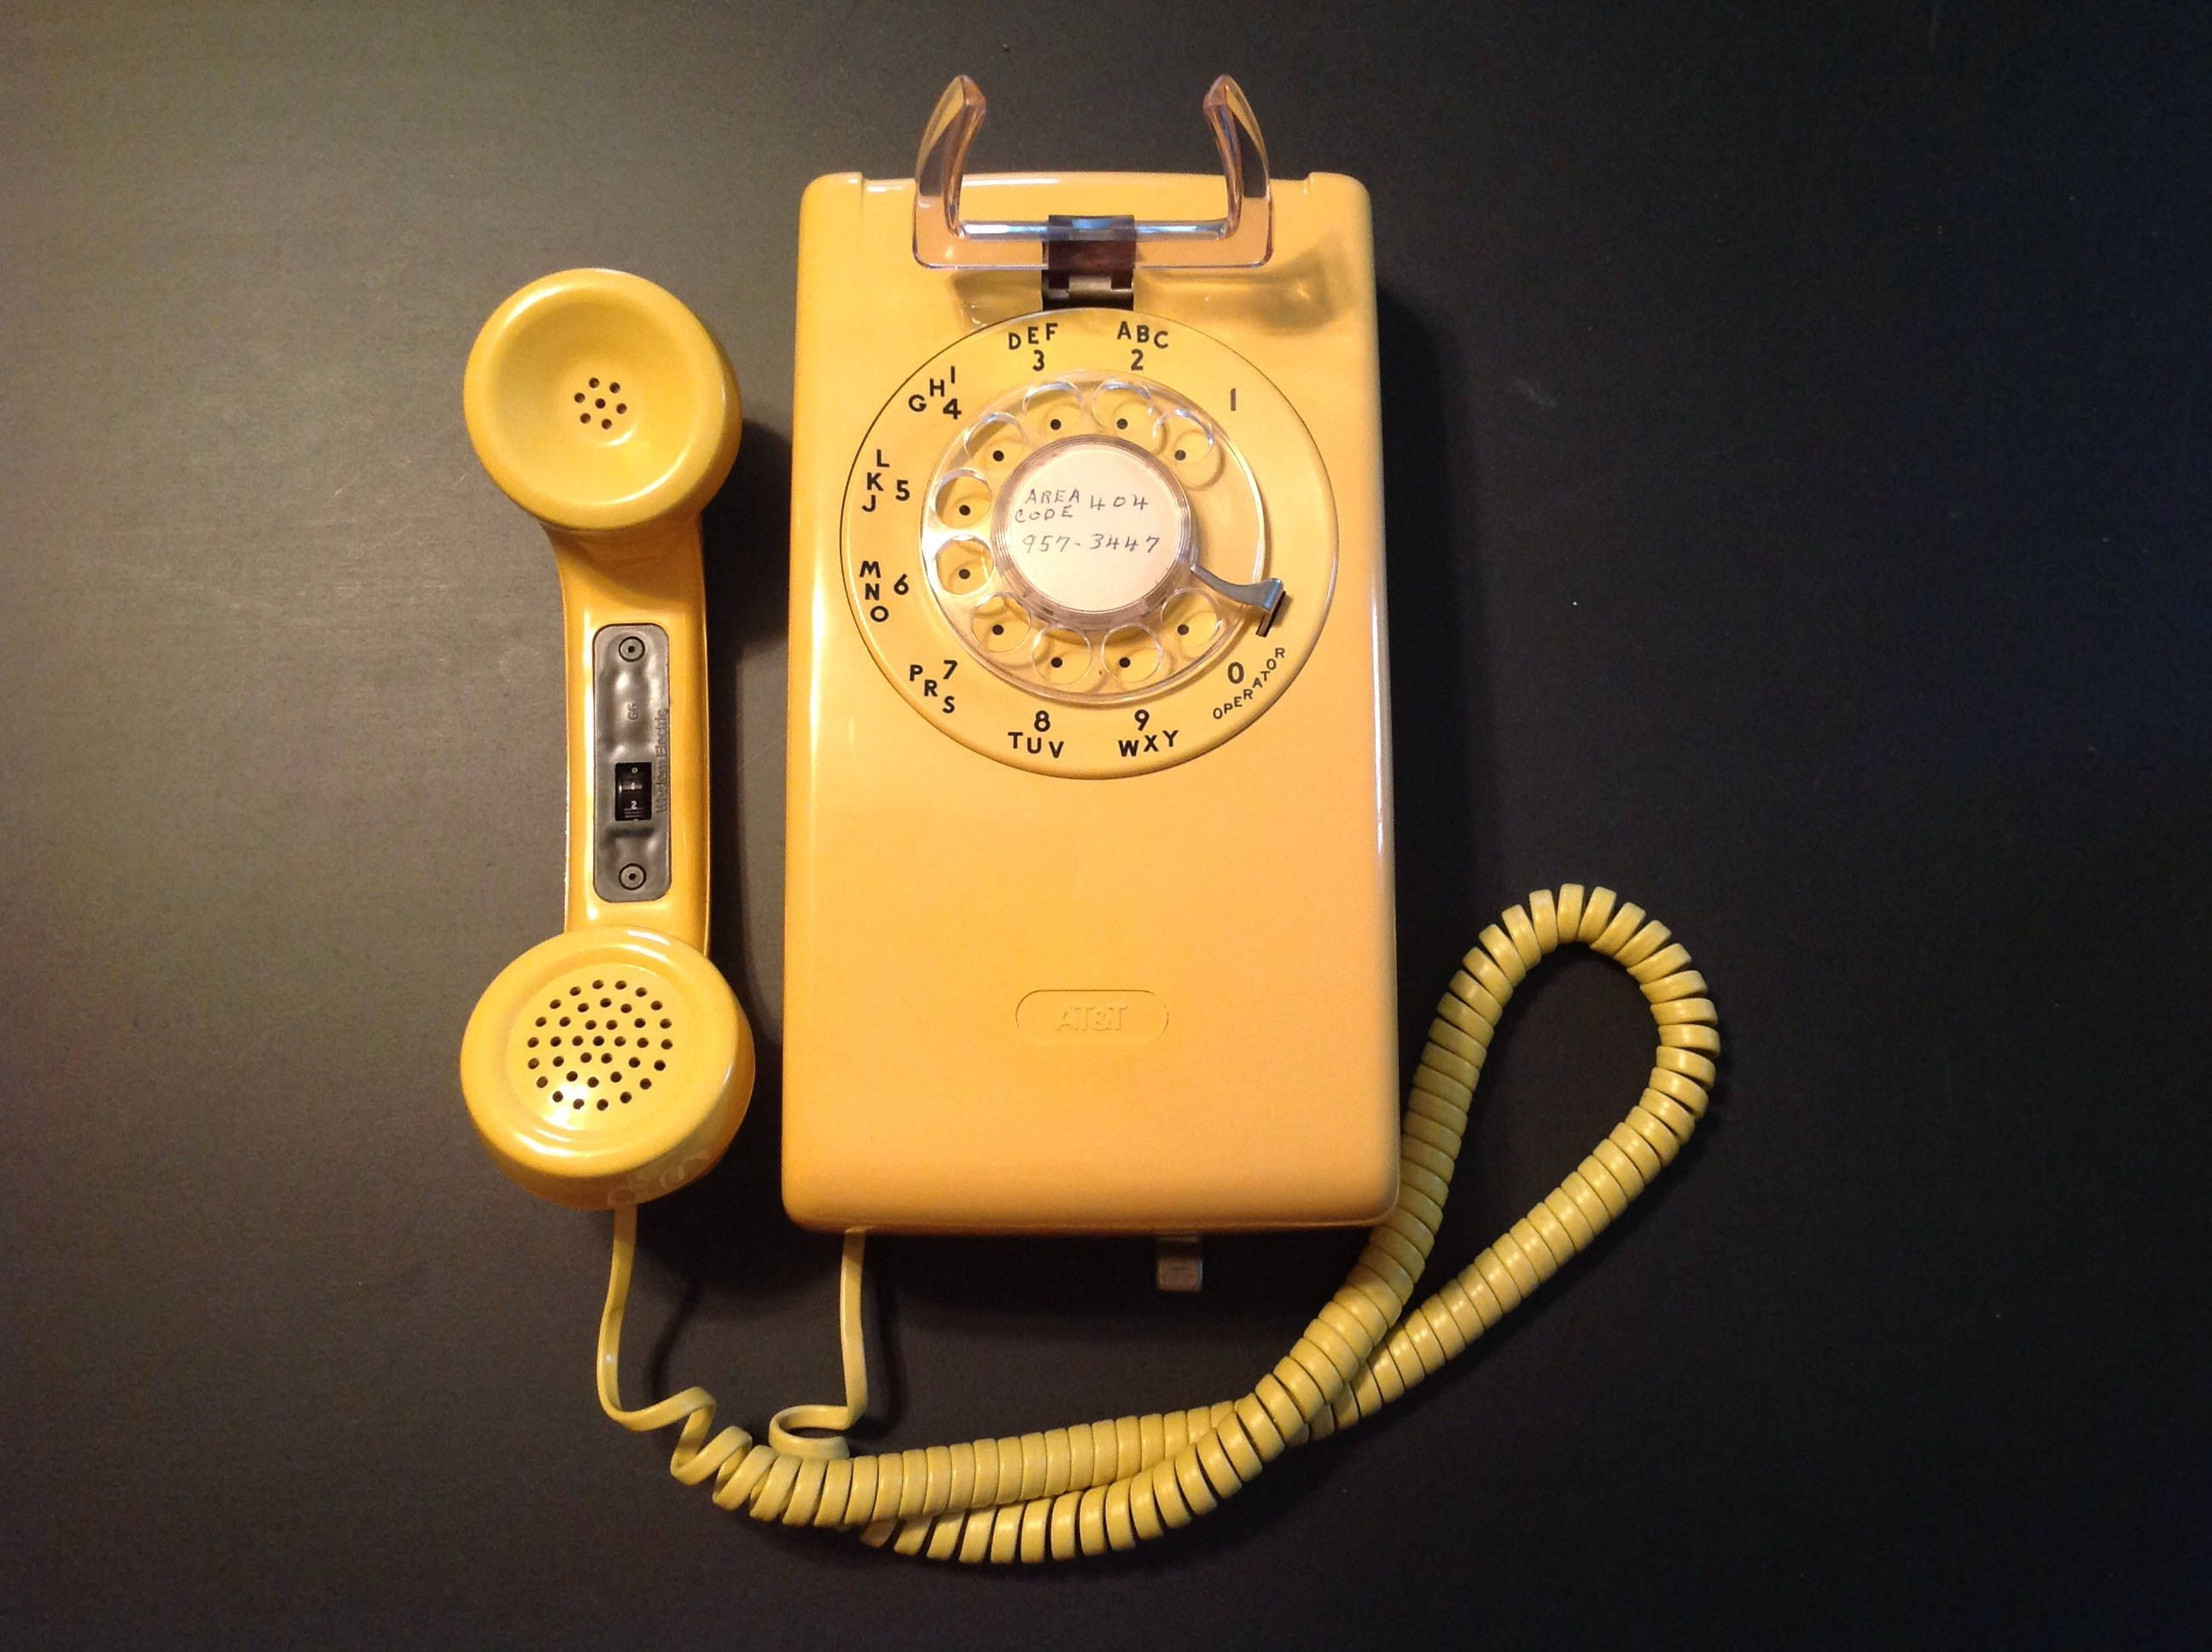 Vintage Yellow Rotary Dial Wall Phone By At T By 2southernpickers